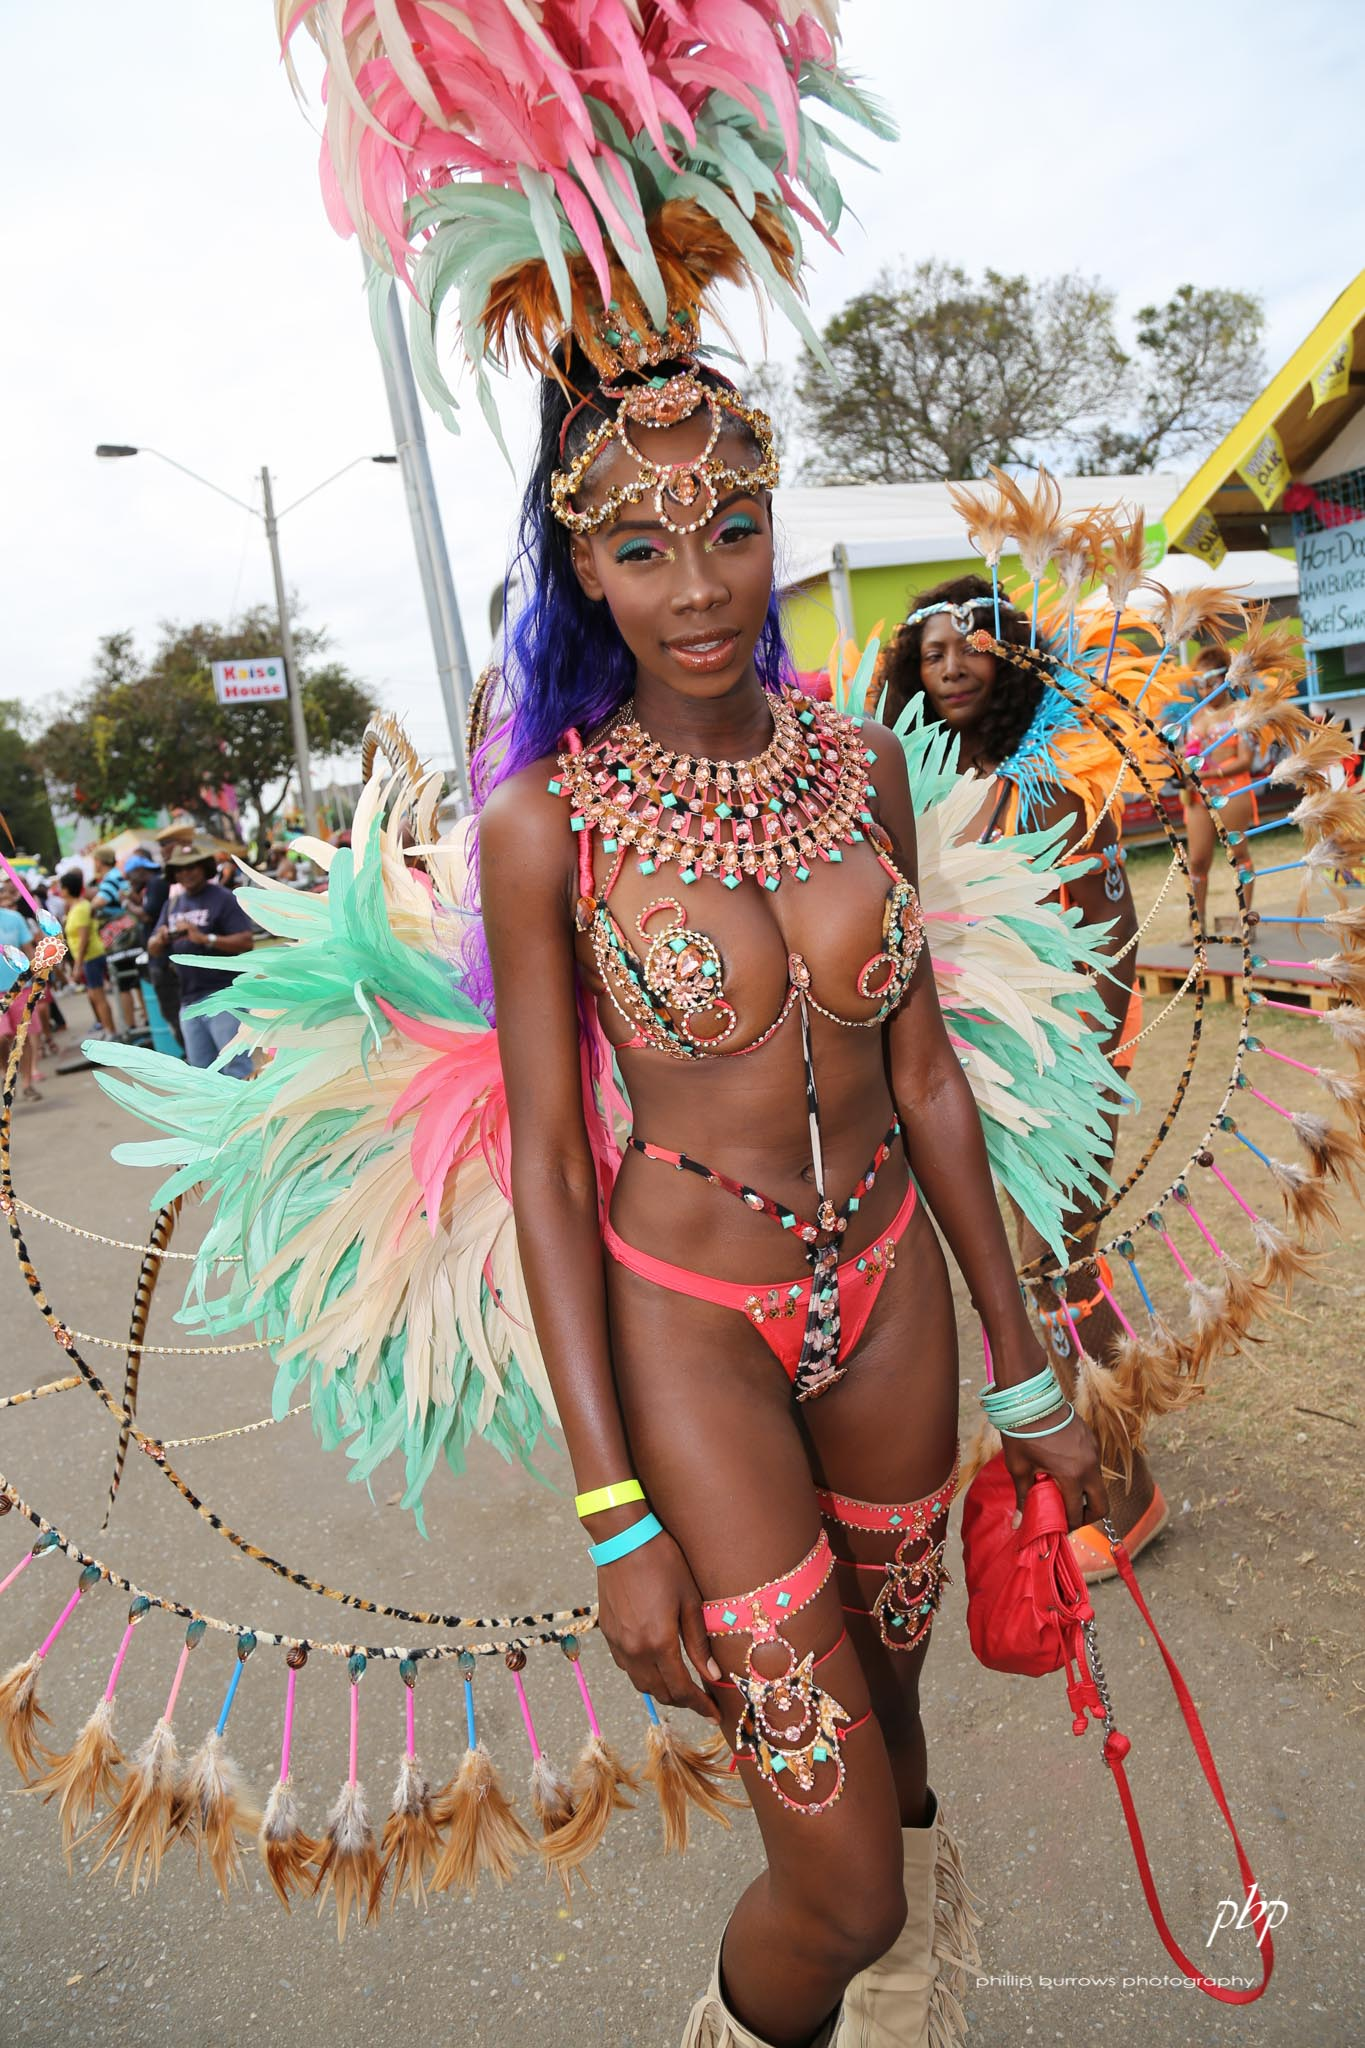 Thank for Trinidad and tobago carnival interesting. Tell